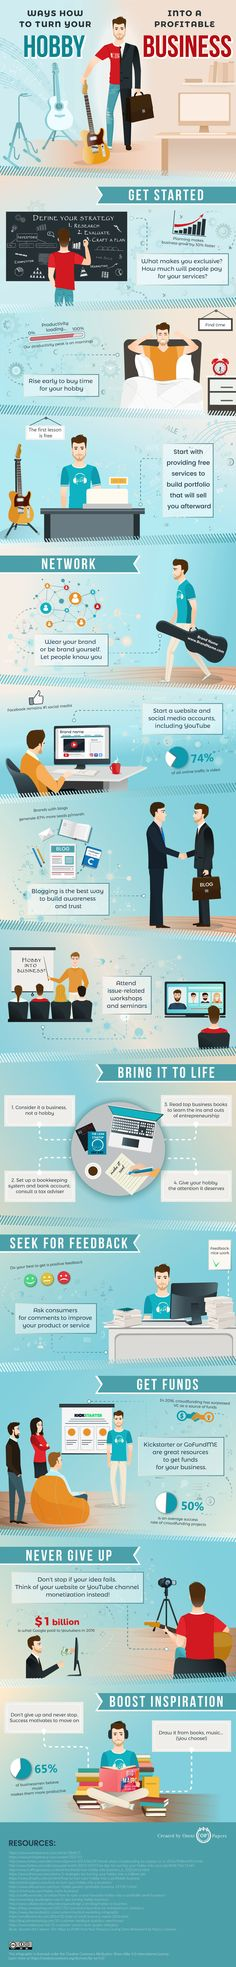 9 Tips to Turn Your Hobby into a Profitable #Business #Infographic #Startup